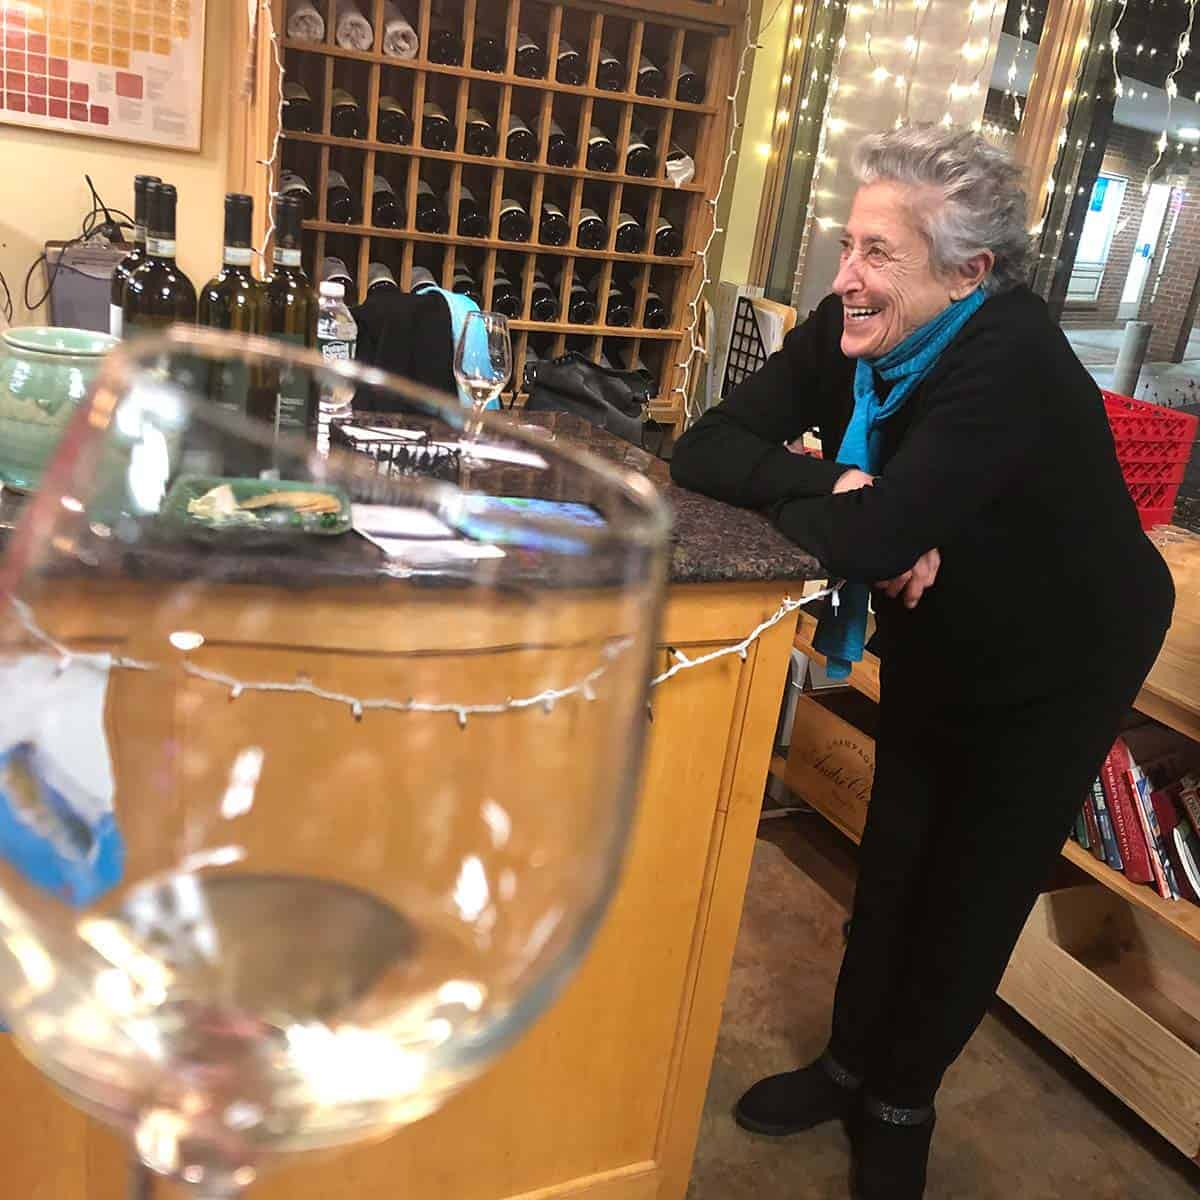 Italian winemaker visiting local wine shop